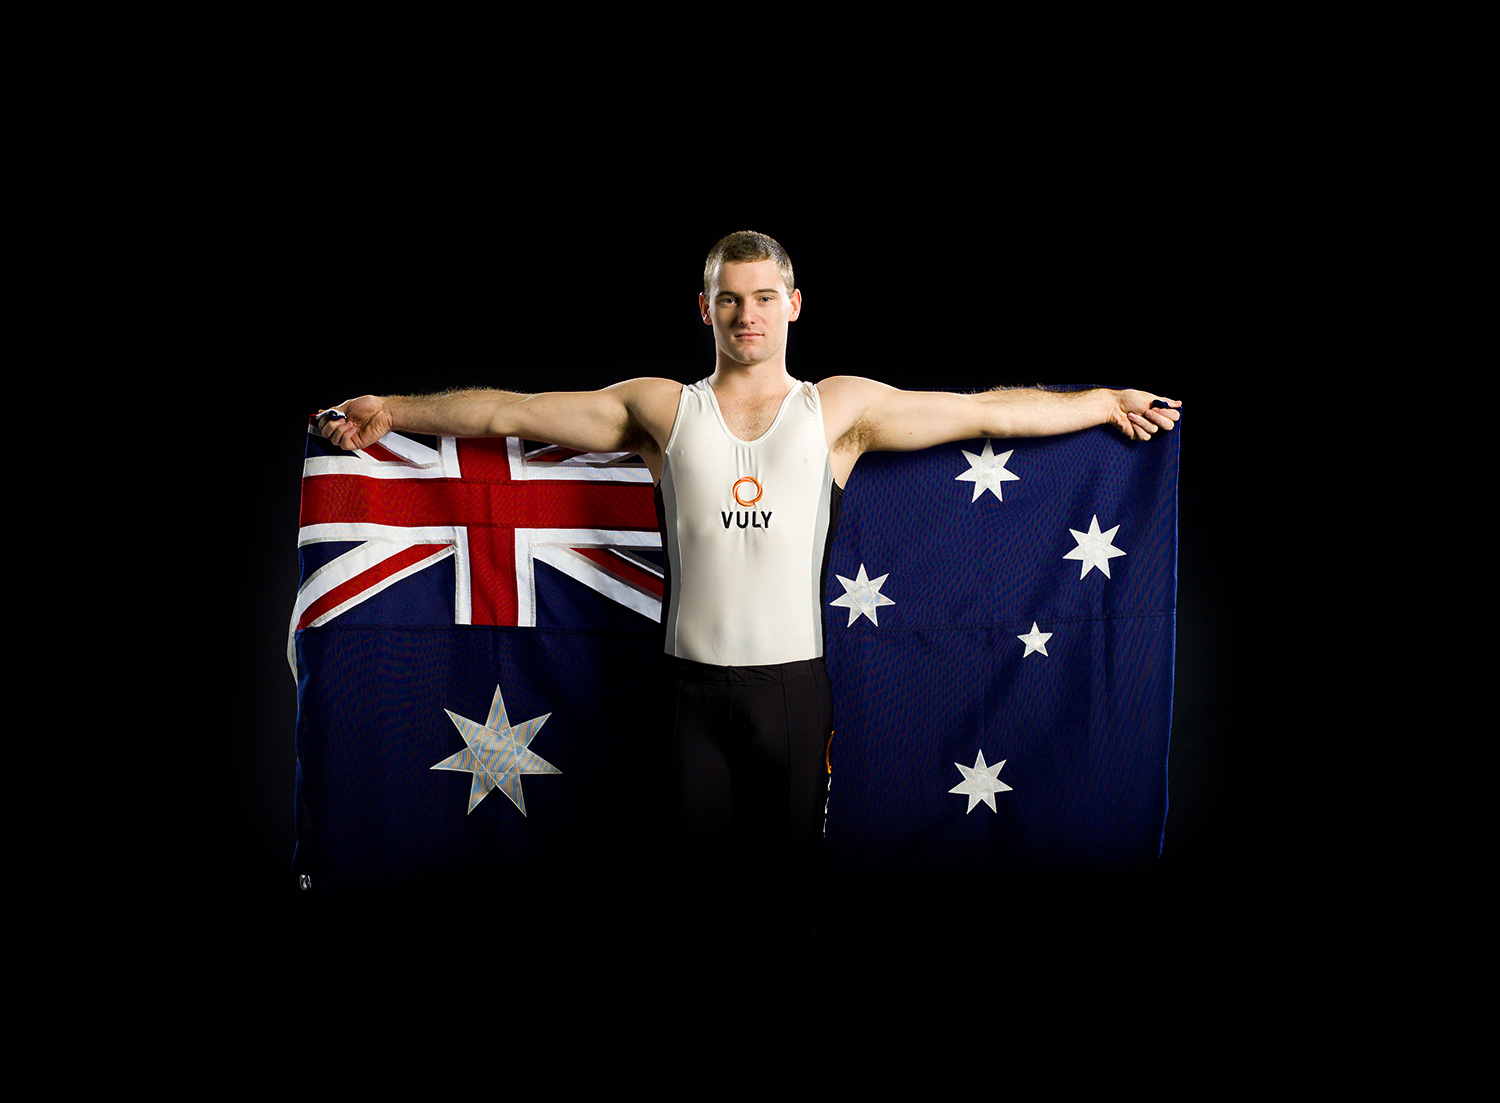 Meet our athlete - Ty Swadling (AUS)